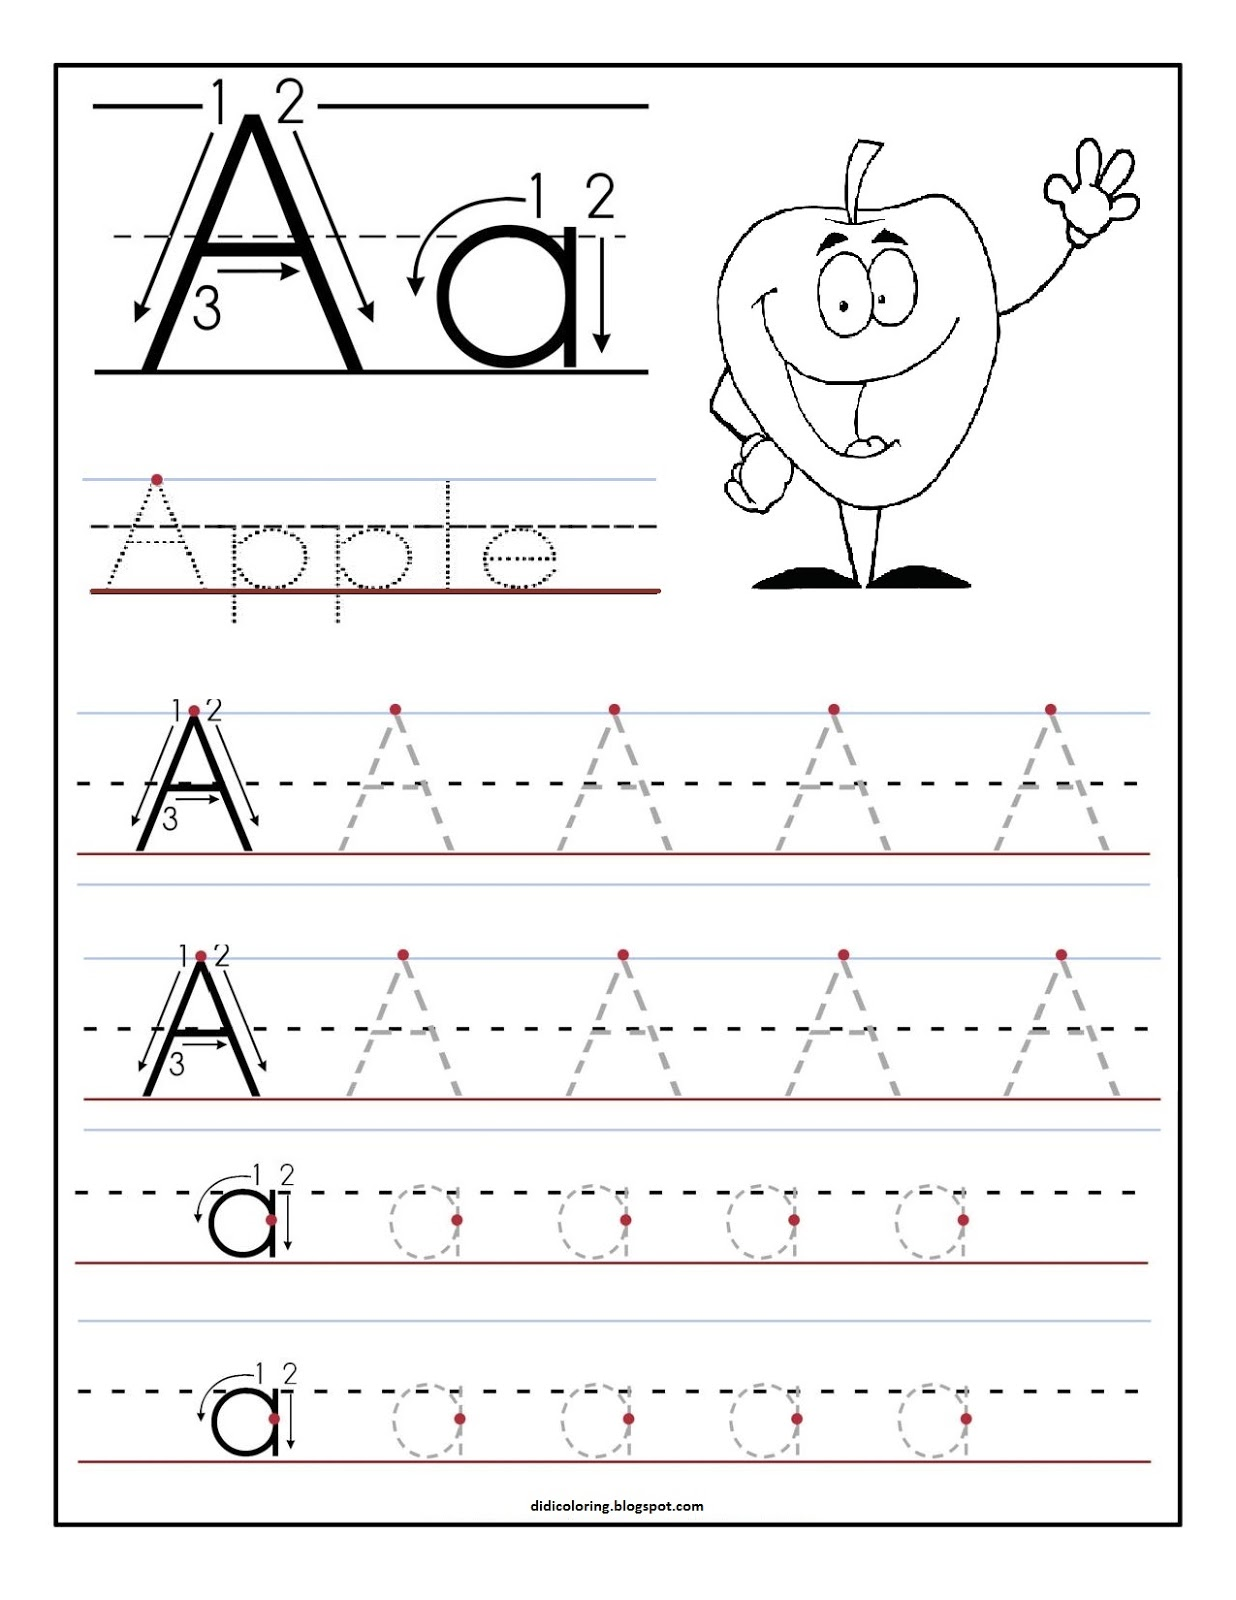 math worksheet : free printable worksheet letter a for your child to learn and  : Free Printable Letter Worksheets For Kindergarten